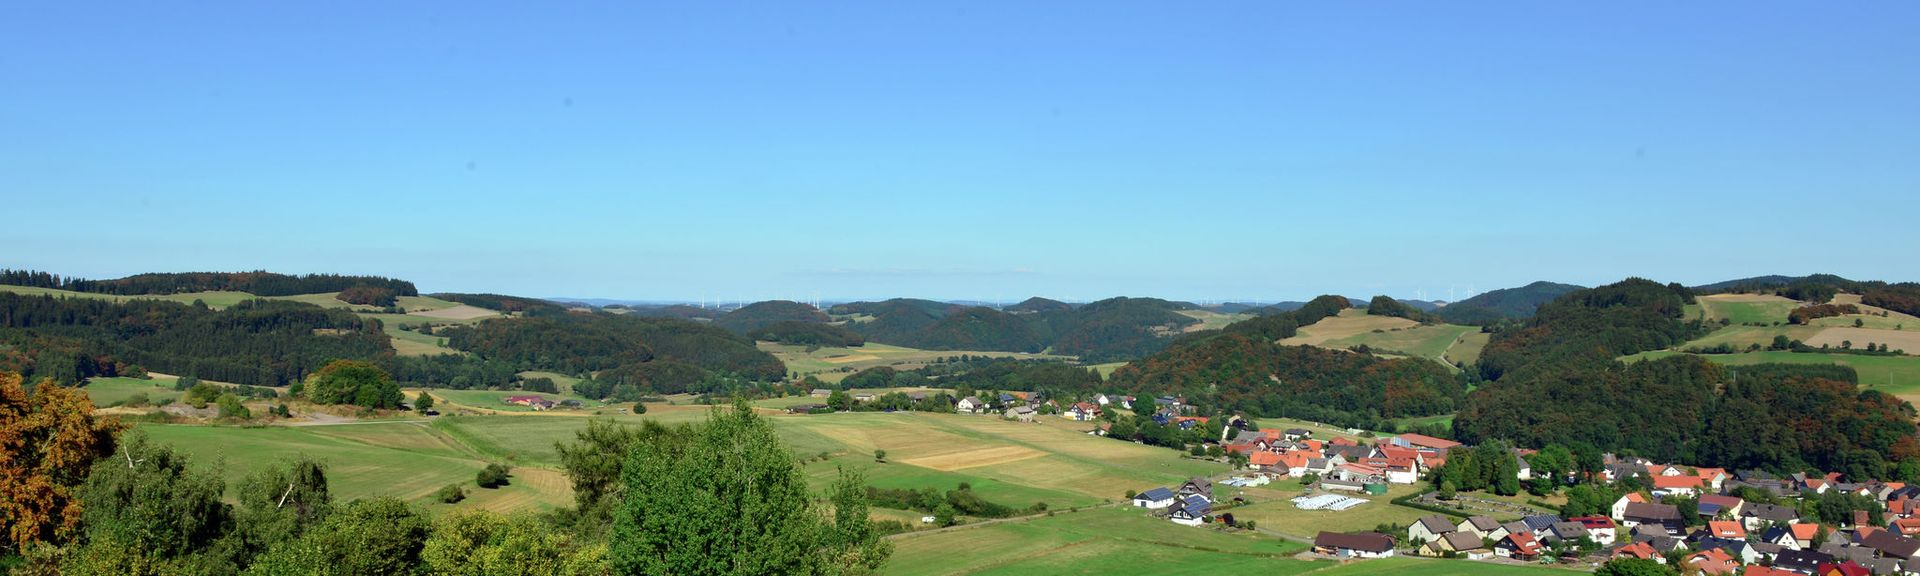 Eimelrod, Willingen (Upland), Germany